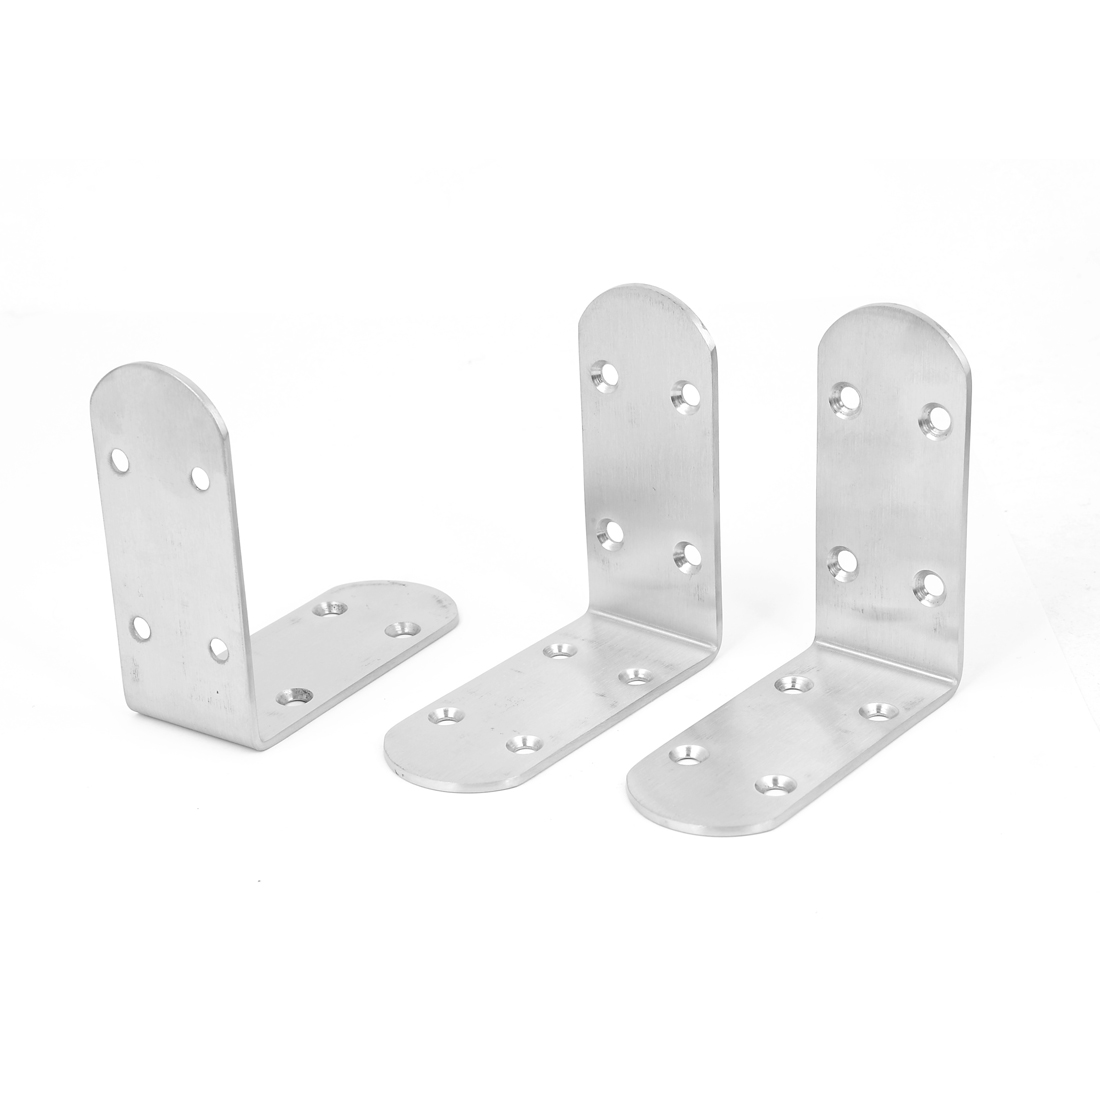 Furniture Shelf Support Right Angle Joint Bracket Brace Hardware Fitting 88x88mm 3pcs